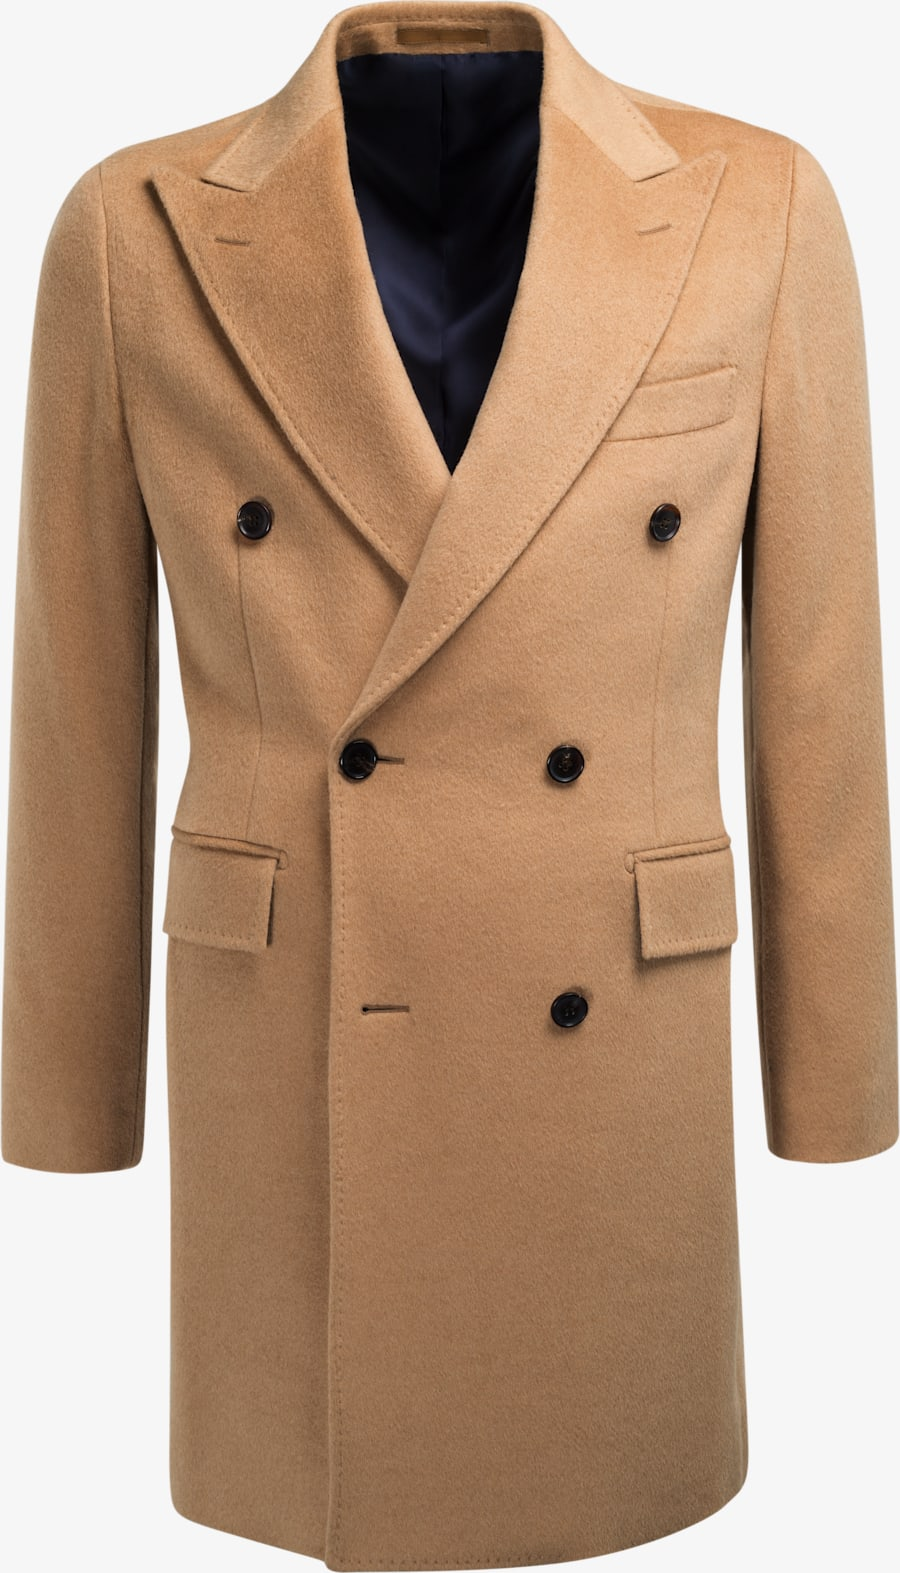 Suitsupply camel coat